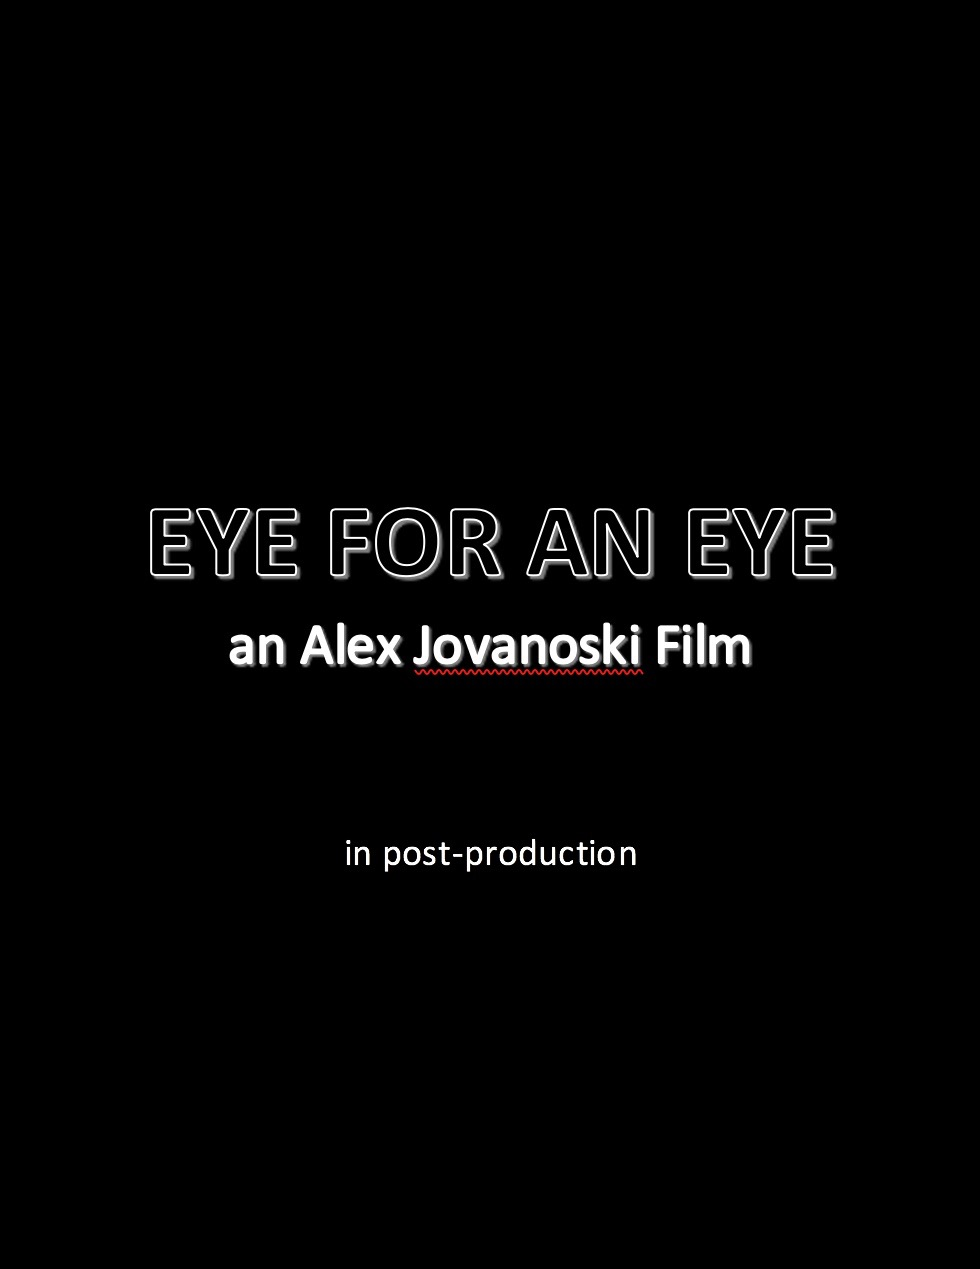 EYE FOR AN EYE POSTER PLACEHOLDER.jpg